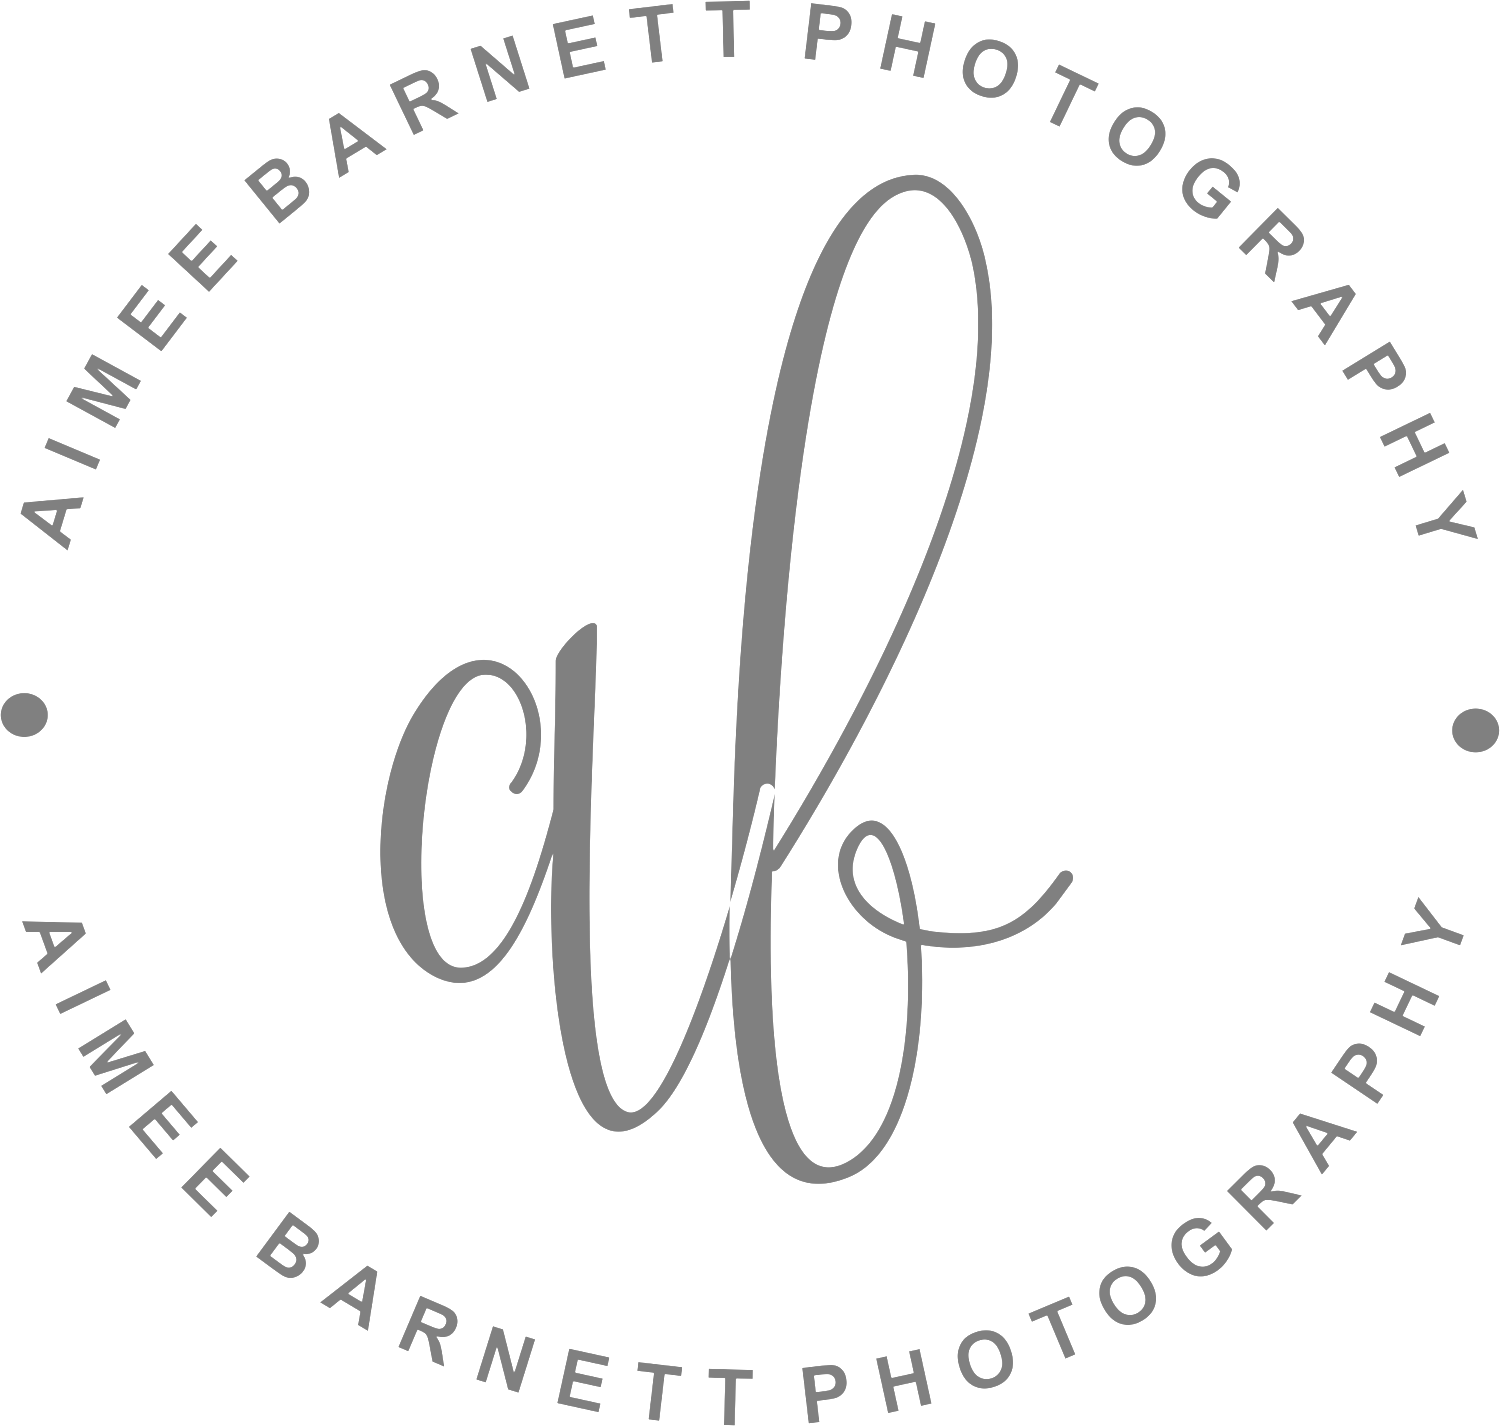 Aimee Barnett Photography